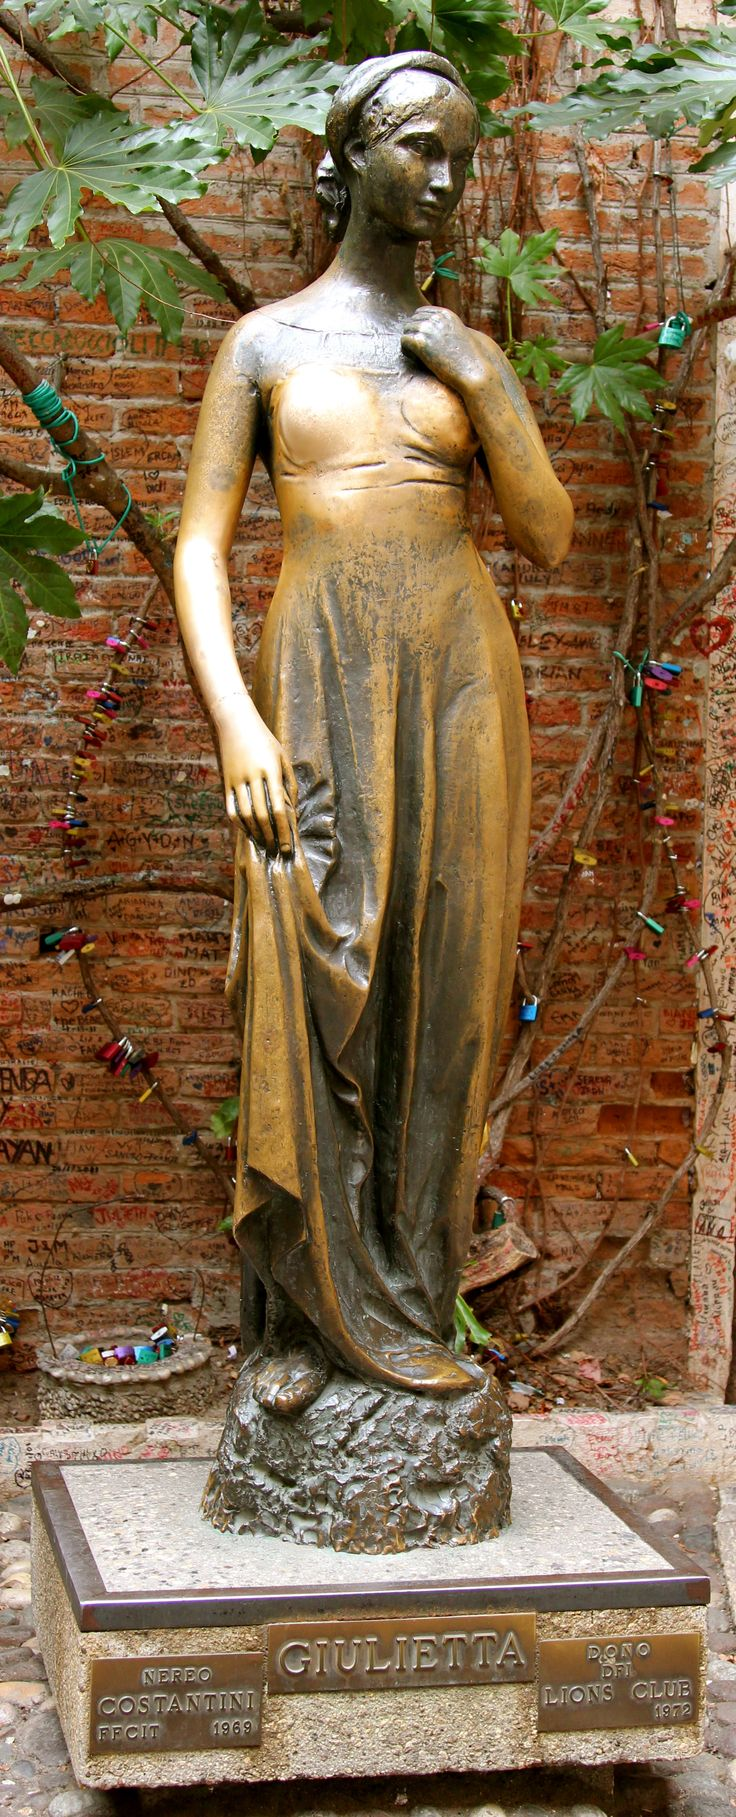 Statue of Juliet in her Courtyard Verona, Italy Touching the right breast of the bronze statue of Juliet in the small courtyard will bring luck to all who are trying to find their true love.